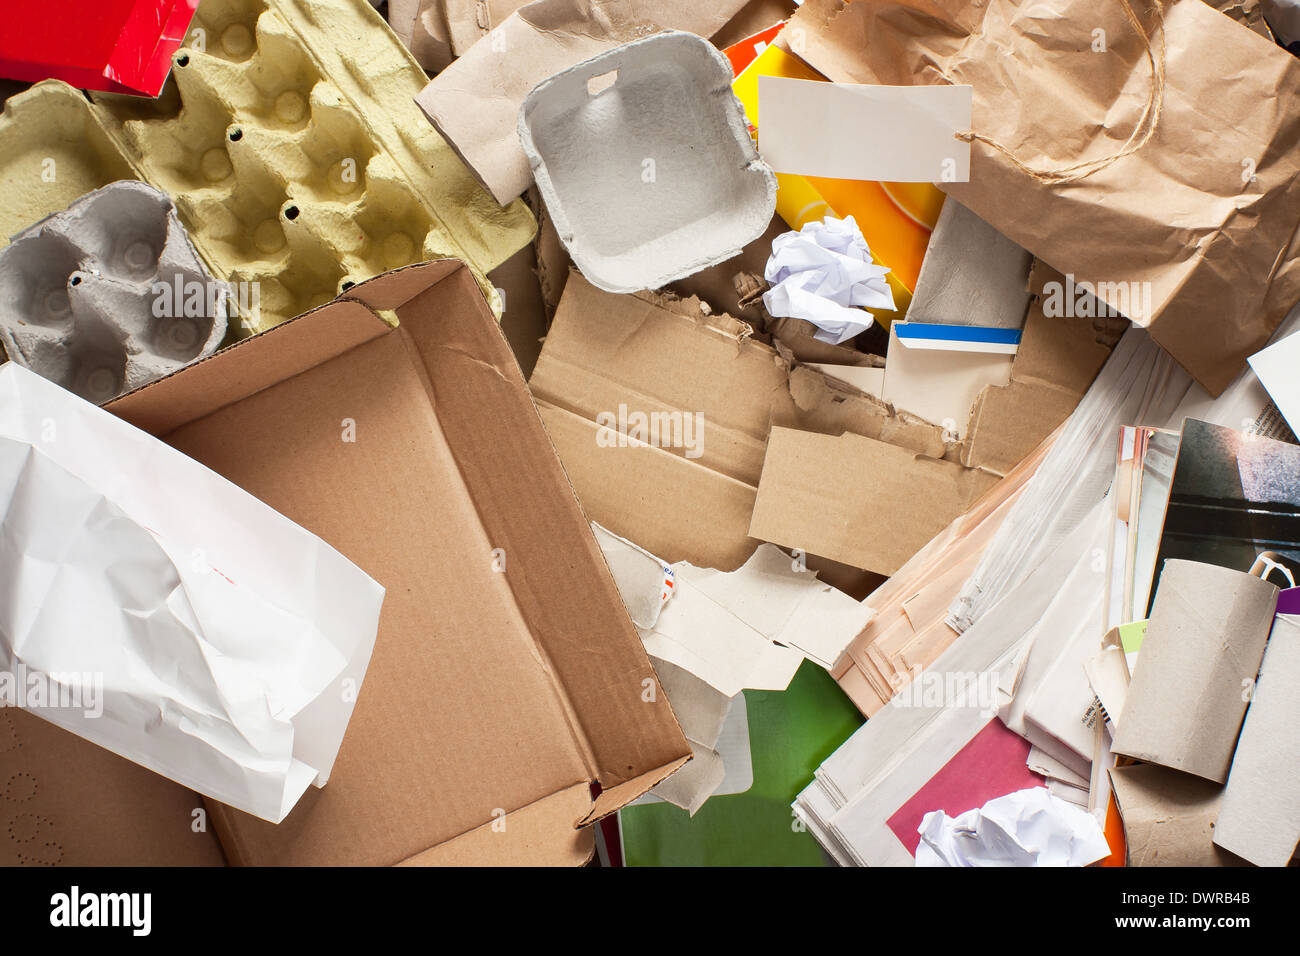 Segregated paper wastes ready to recycling - Stock Image